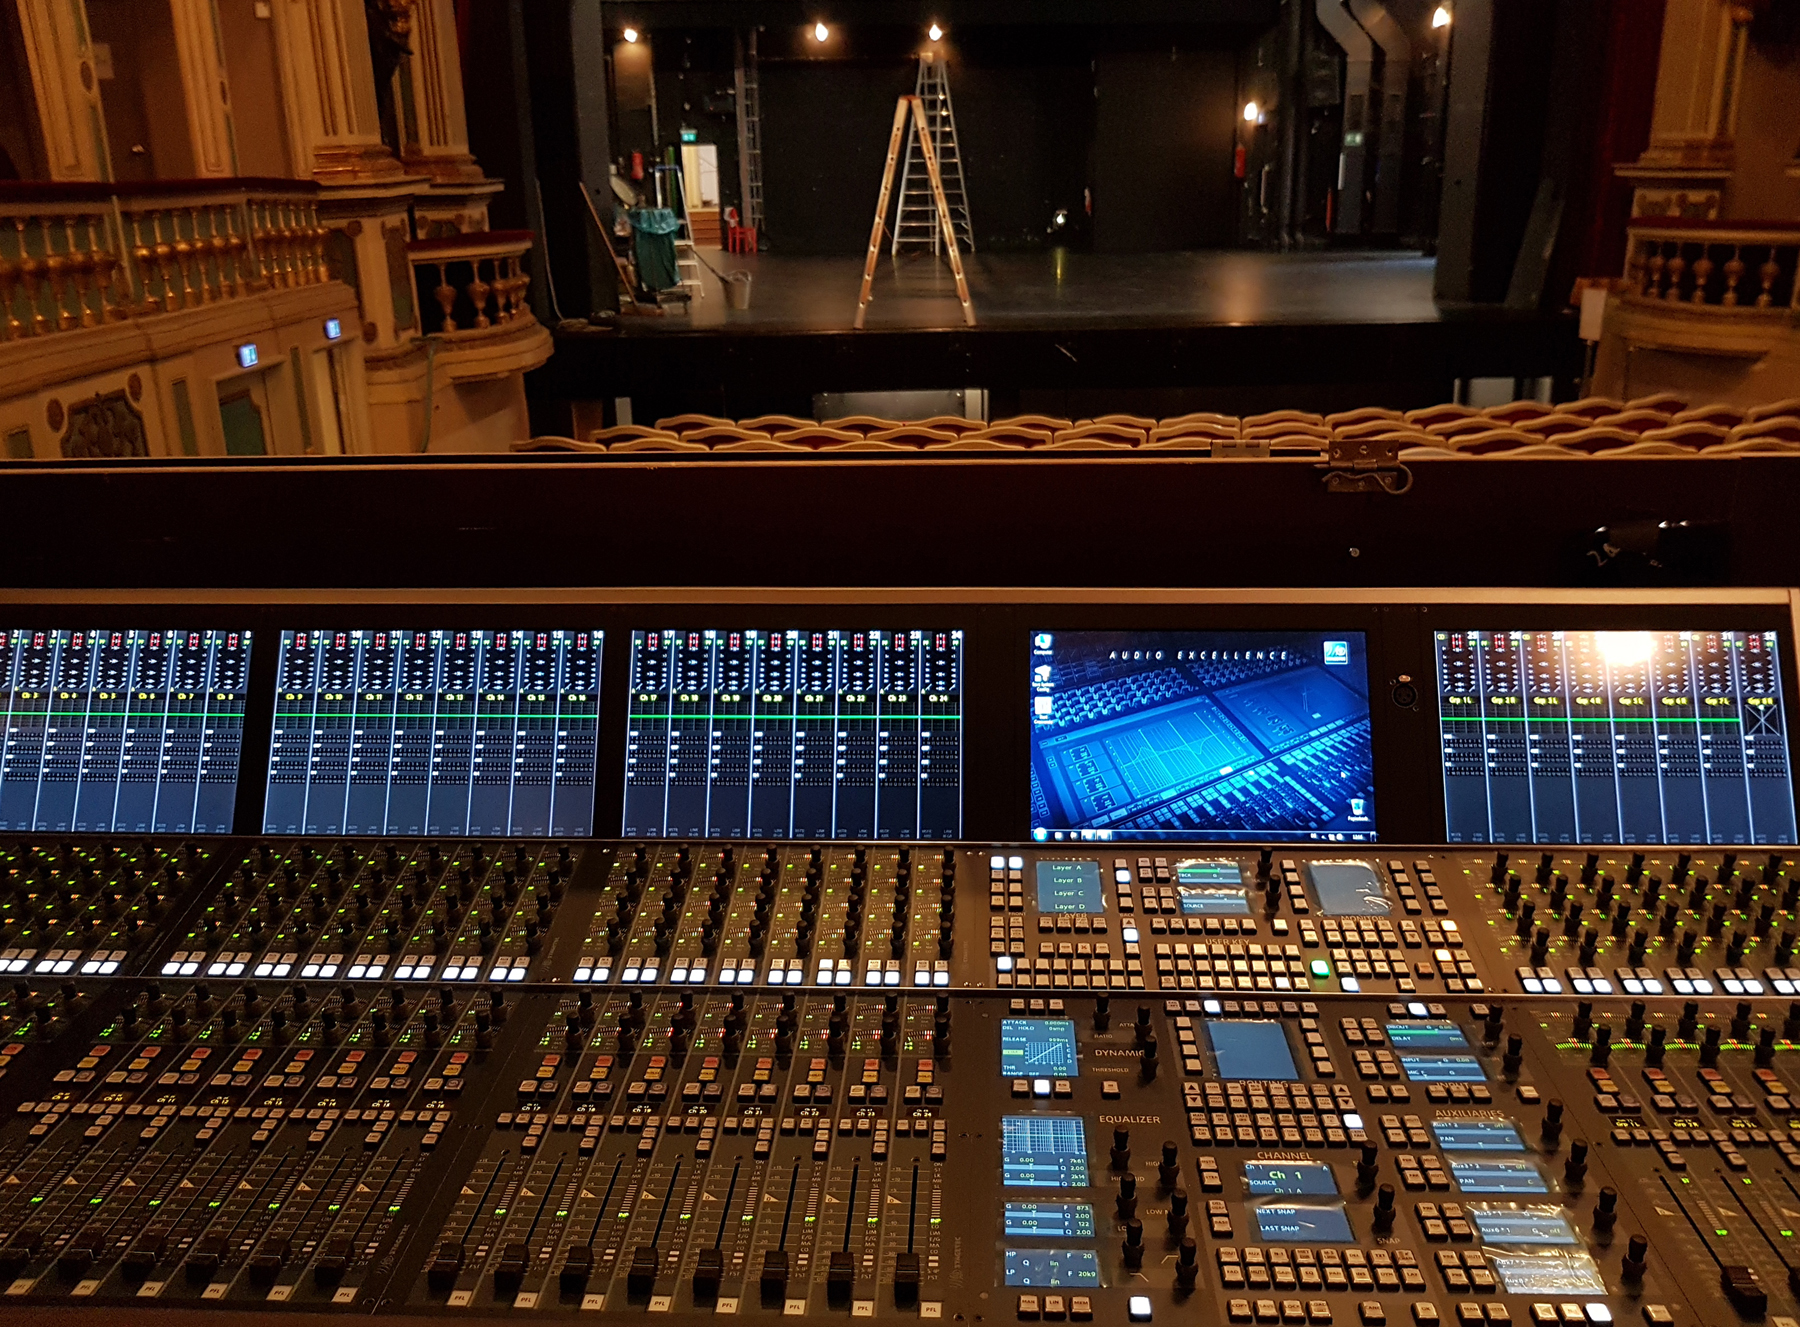 2019 12 StageTec Theater Erlangen Crescendo stage